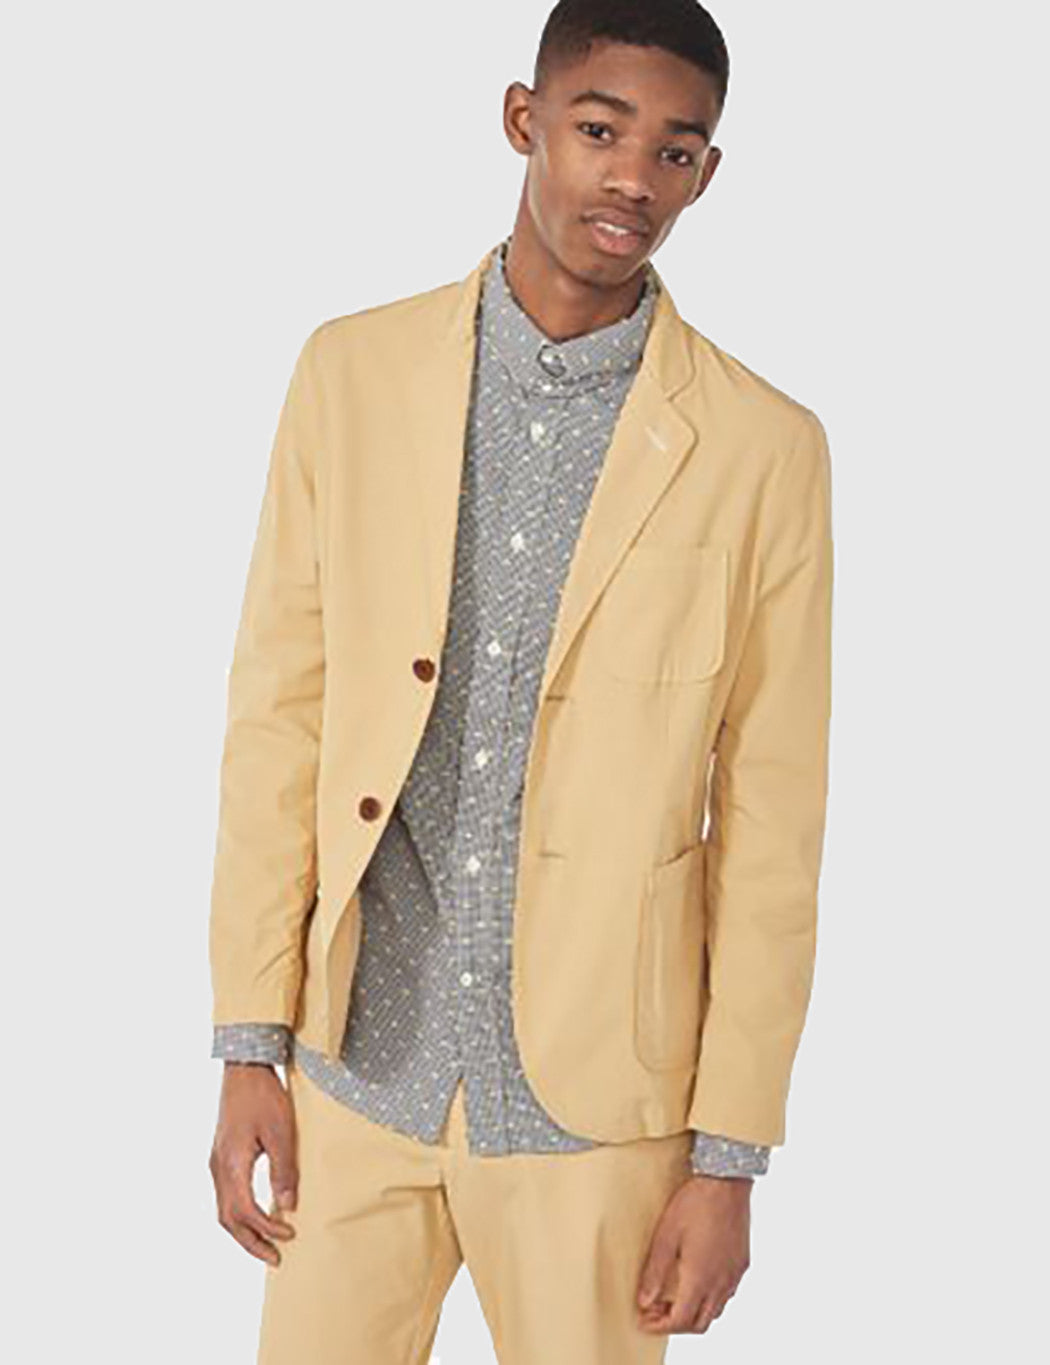 46299abbd Gant Rugger Cotton Blazer Jacket - Warm Almond